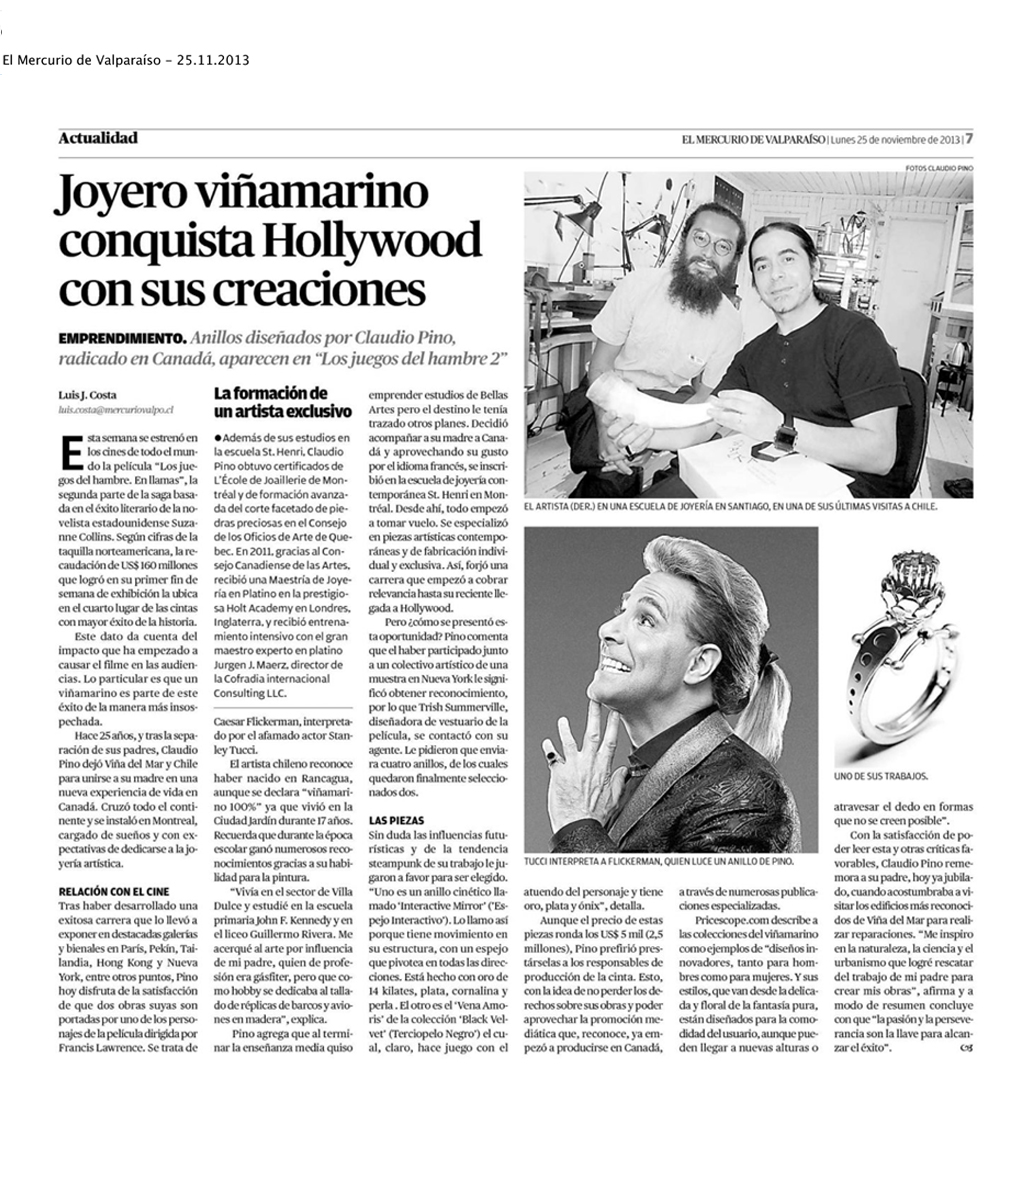 El Mercurio, Chile